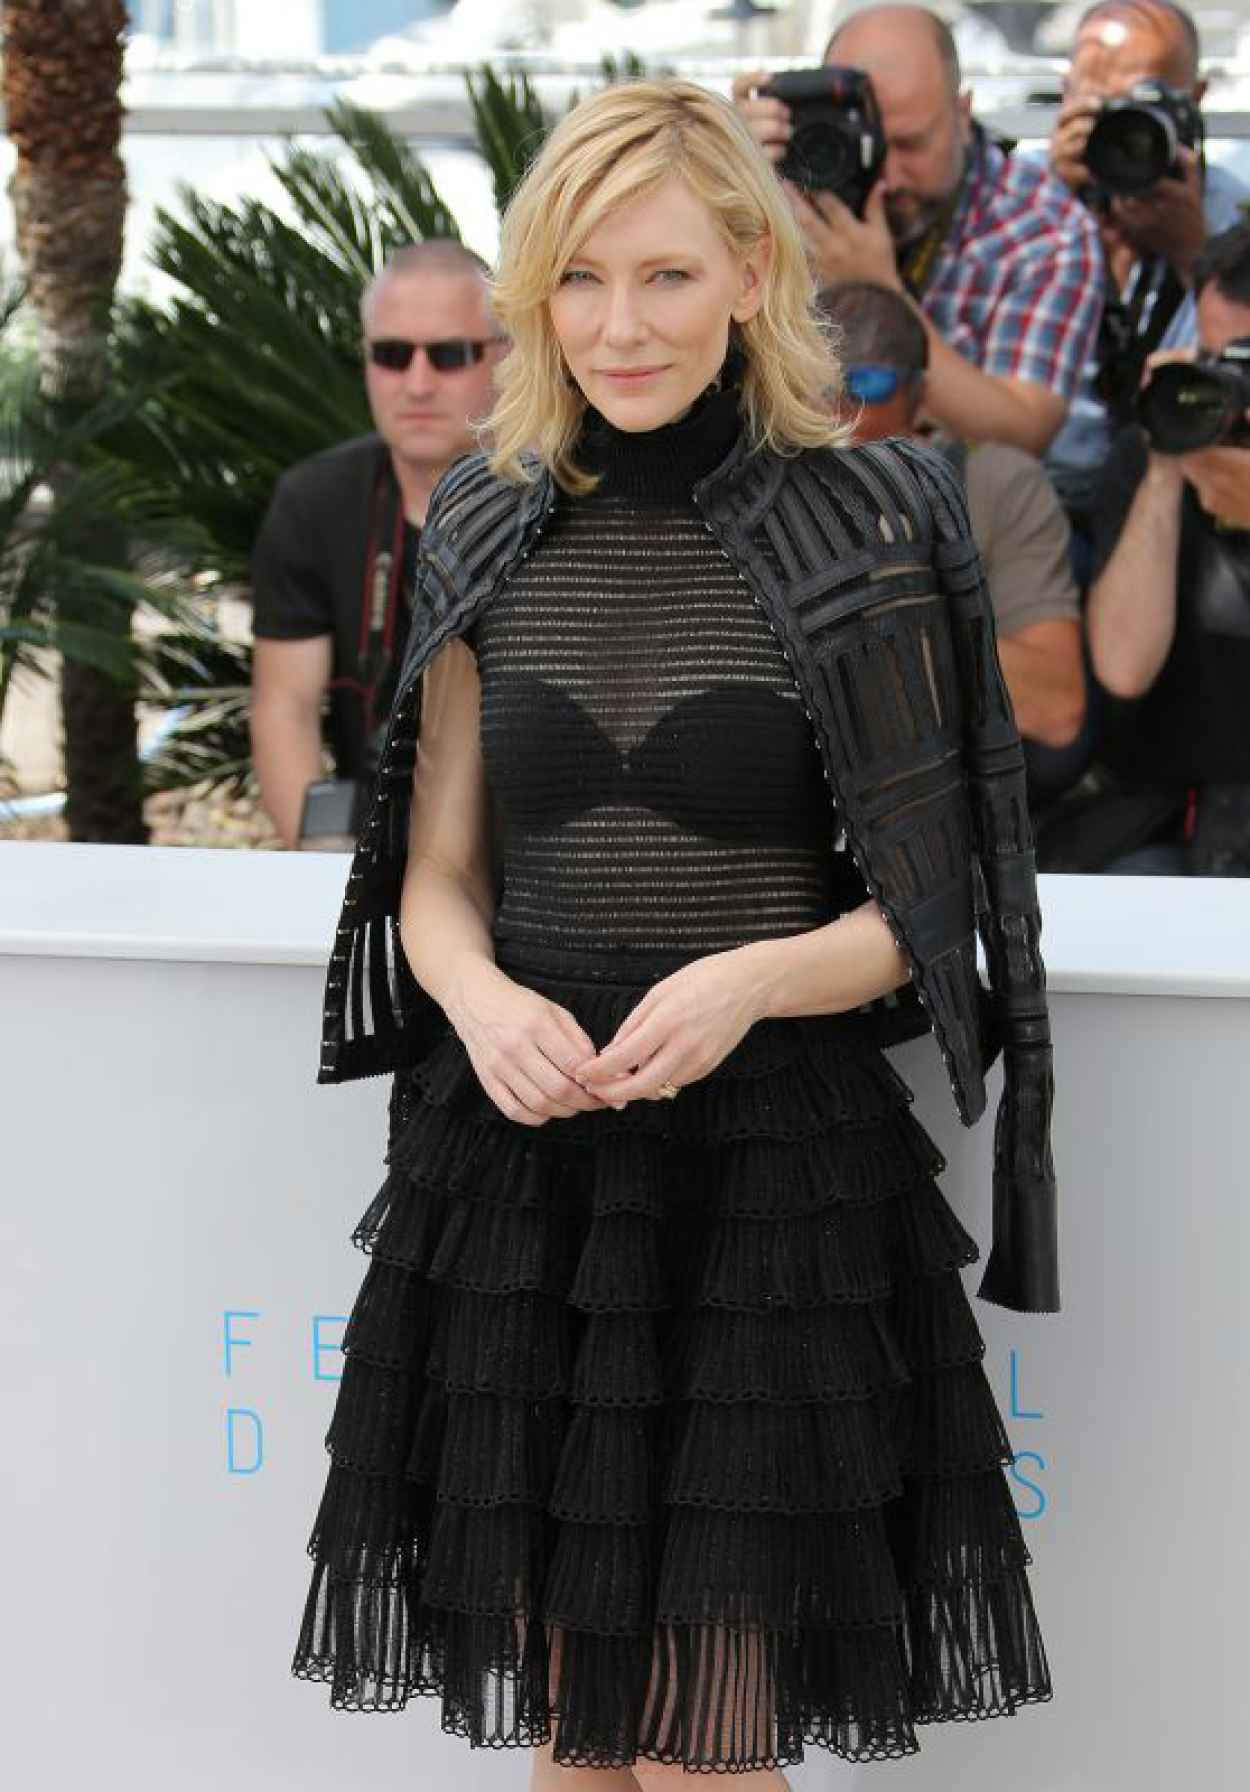 Cate Blanchett - Carol Photocall in Cannes, France, May 2015-1